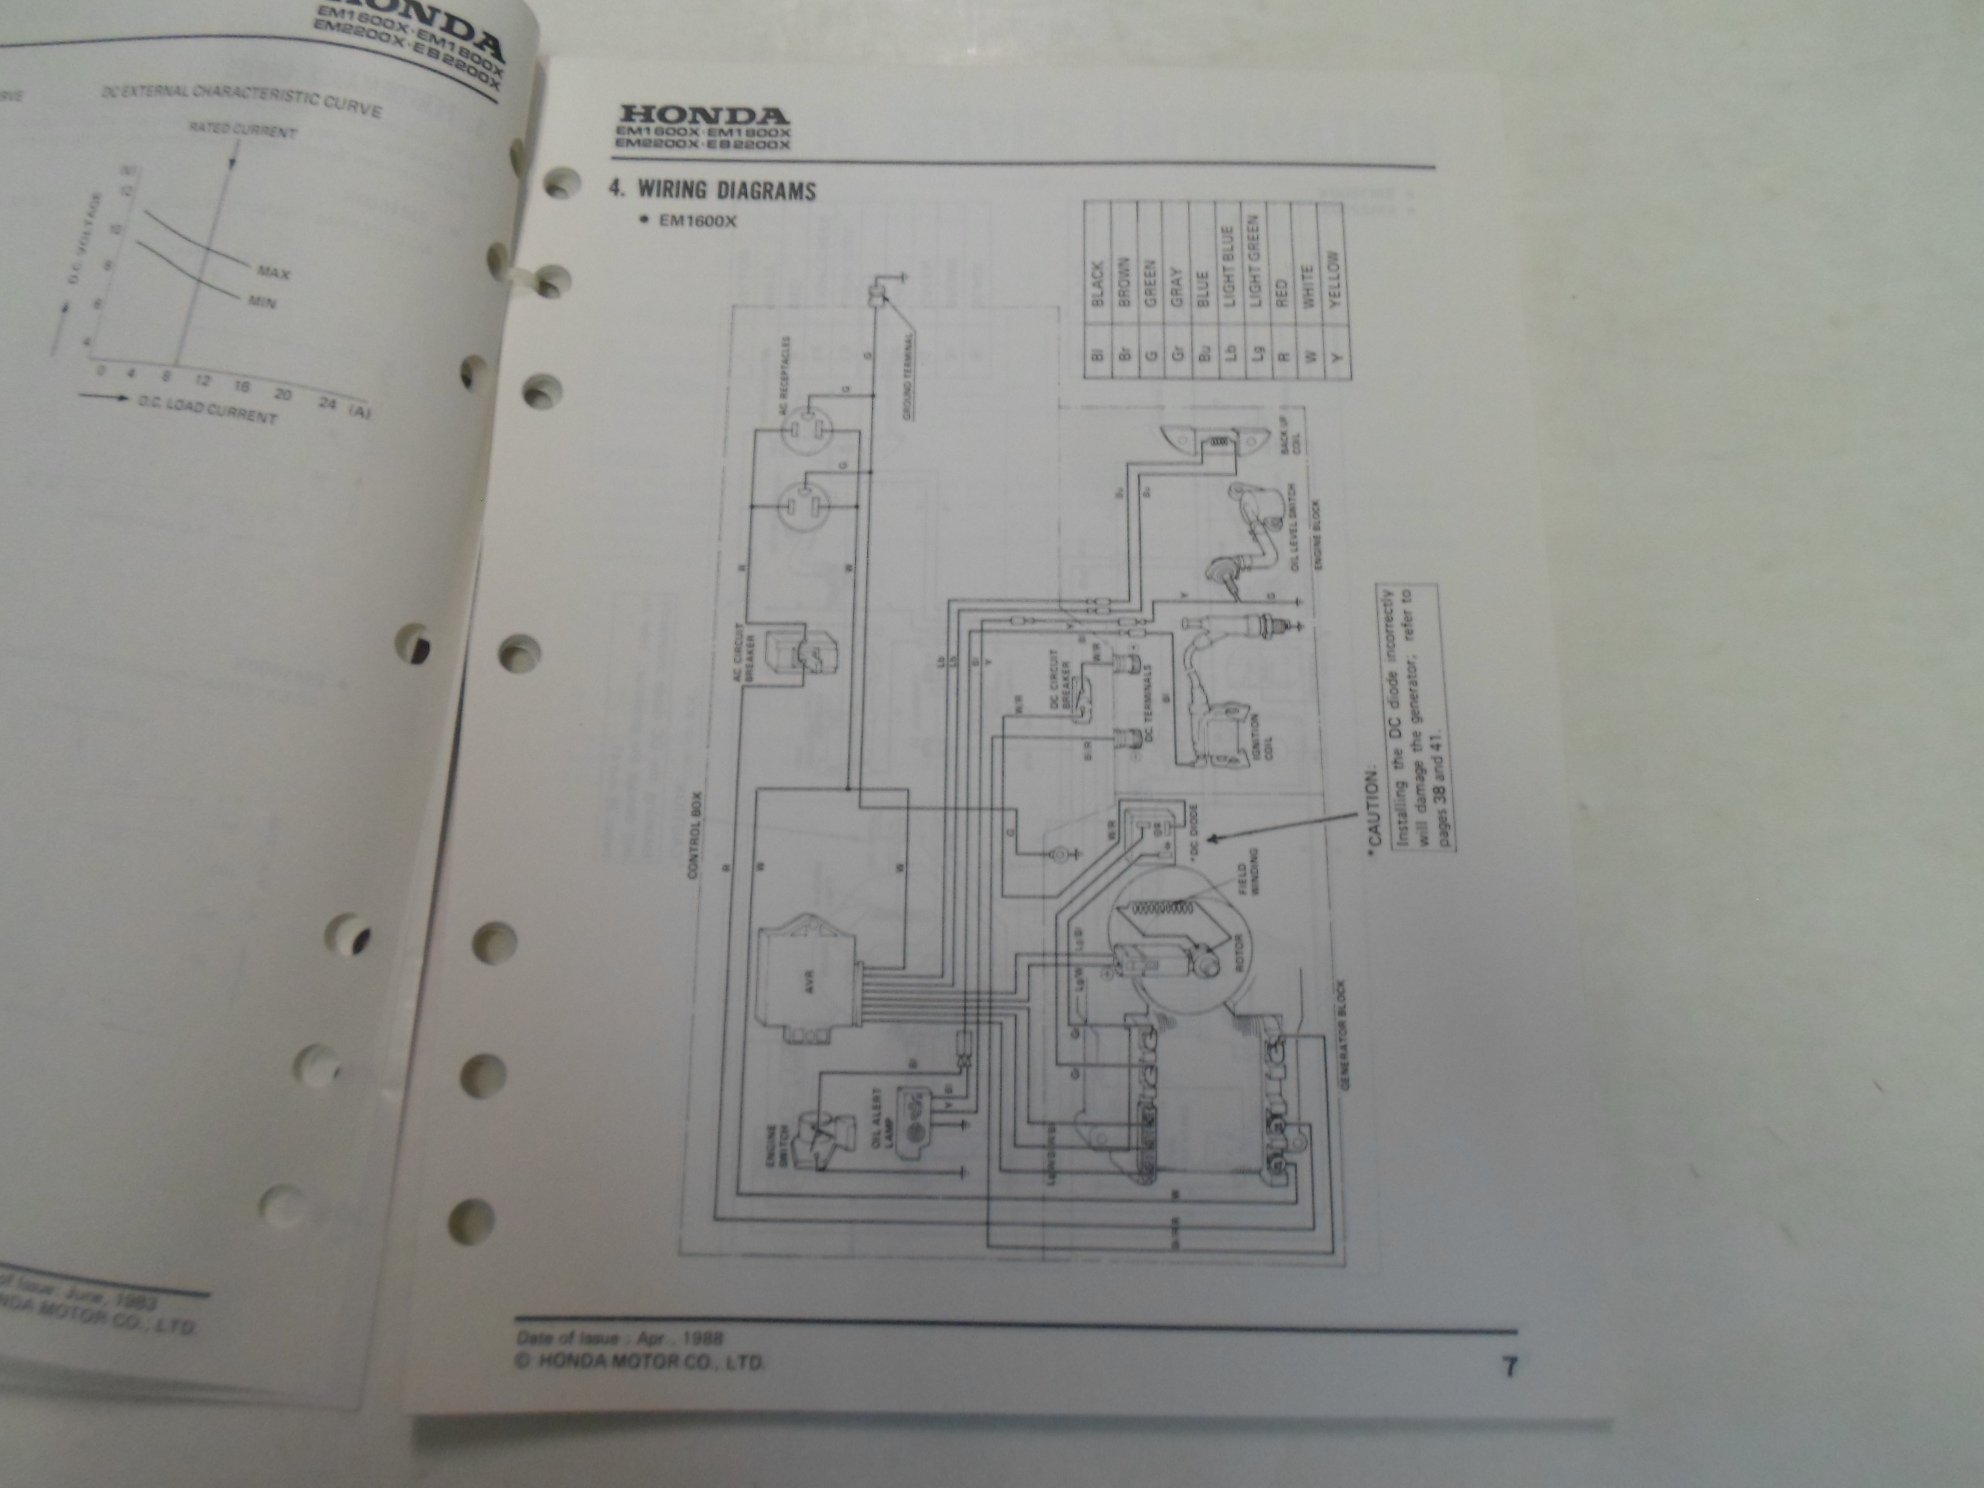 1983 Honda Em1600x Em1800x Em2200x Eb2200x Generator Shop Manual Schematics Loose Leaf Motor Co Books